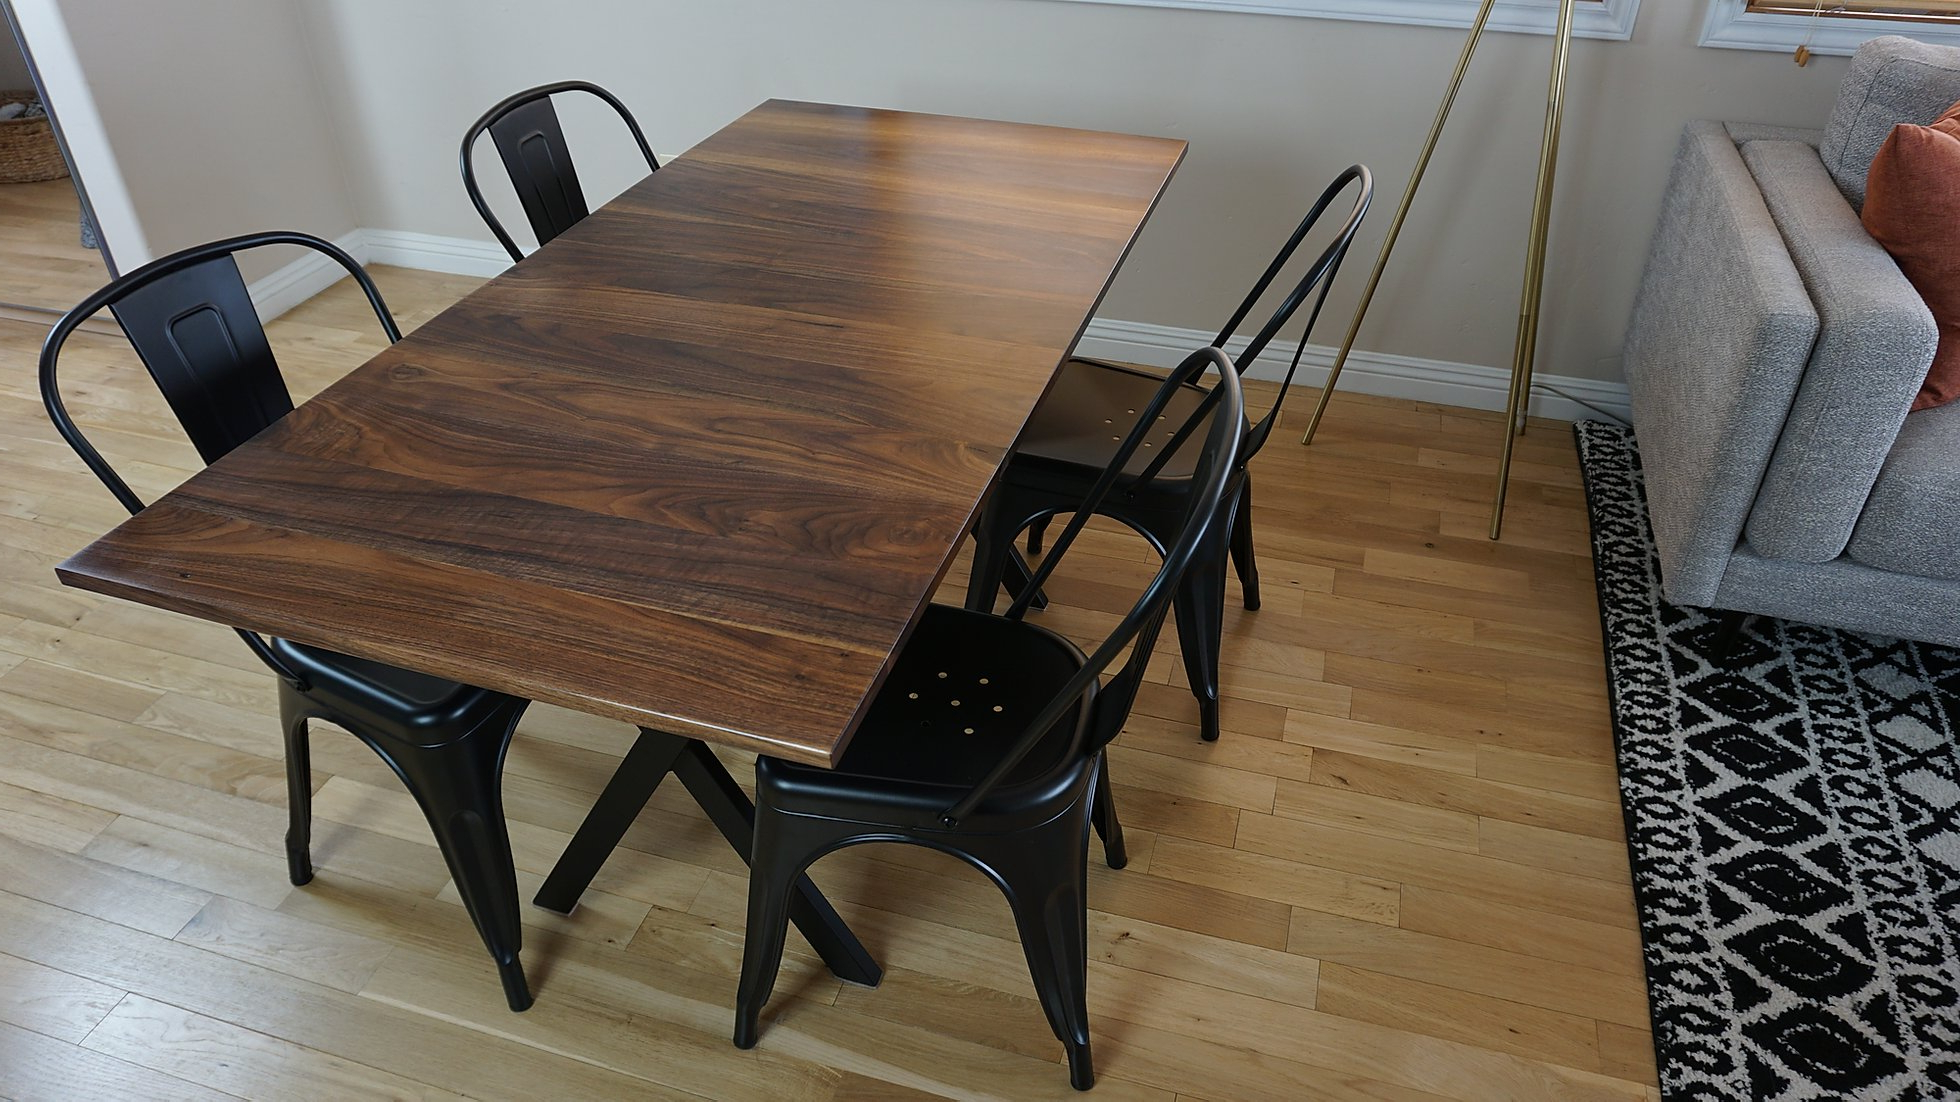 2018 The Tremont Dining Table Intended For Dining Tables With Black U Legs (View 2 of 30)